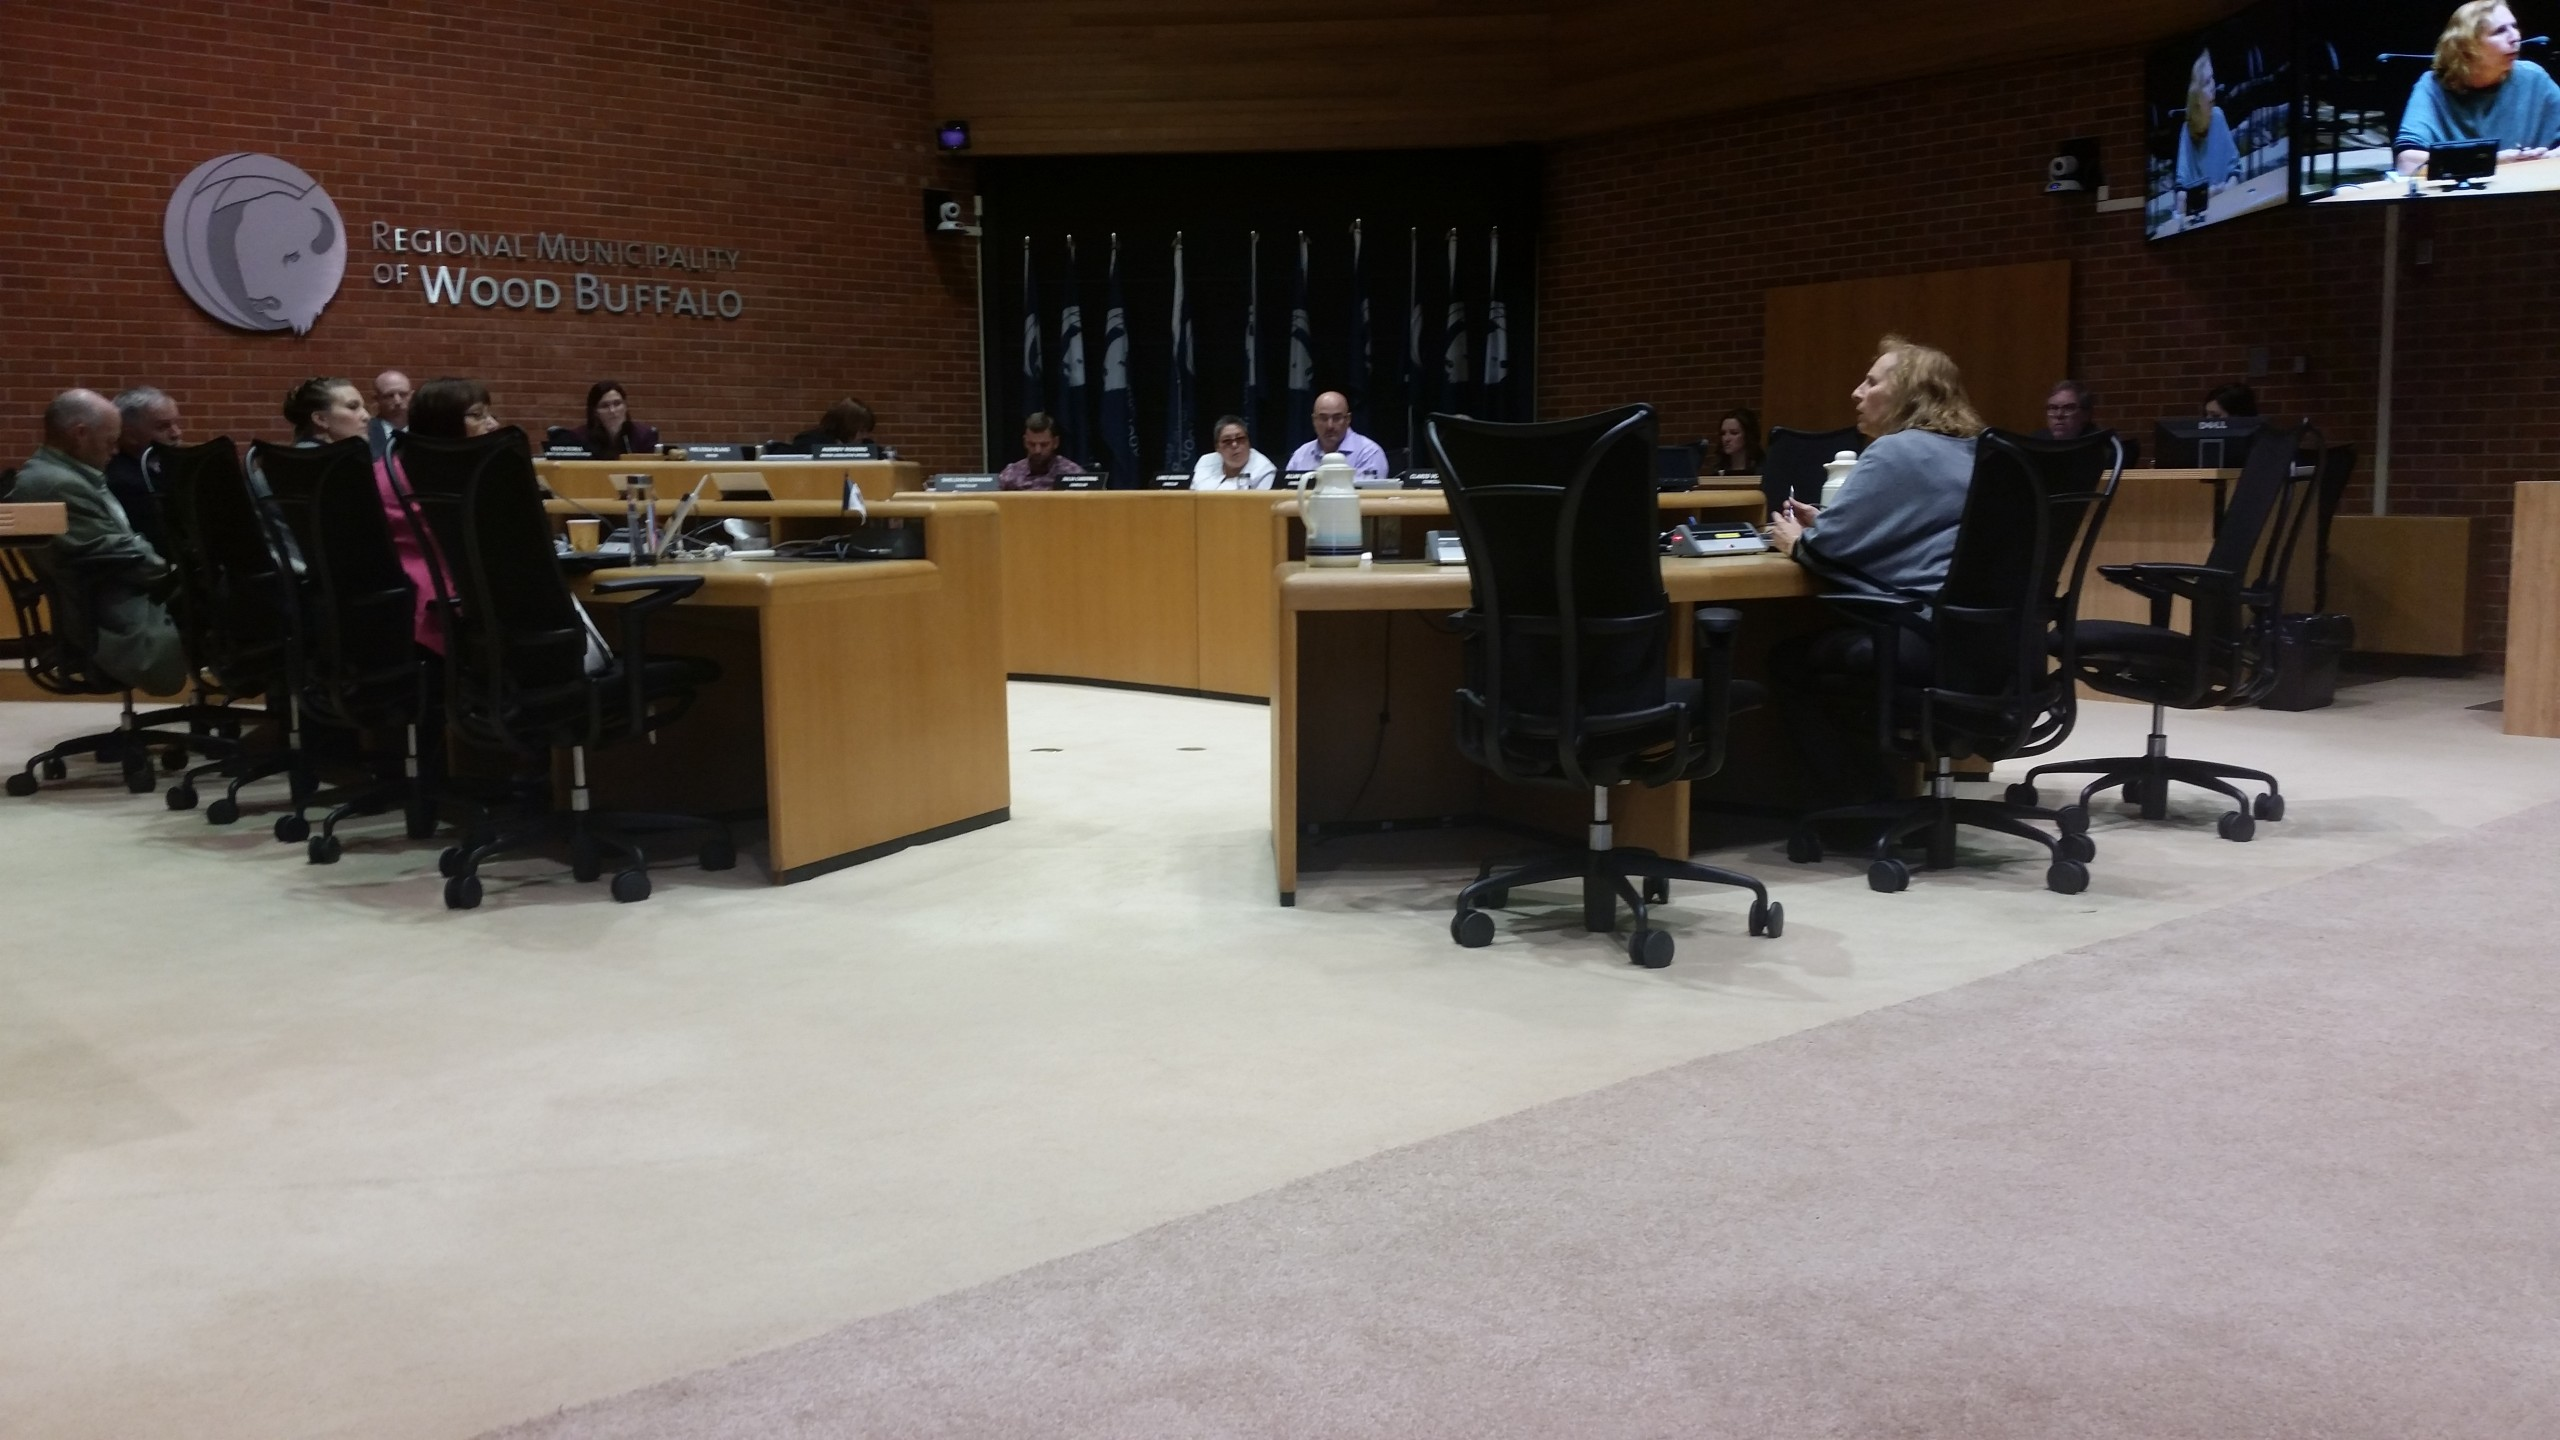 Council votes in favor of compensation pay for staff who stayed during evacuation